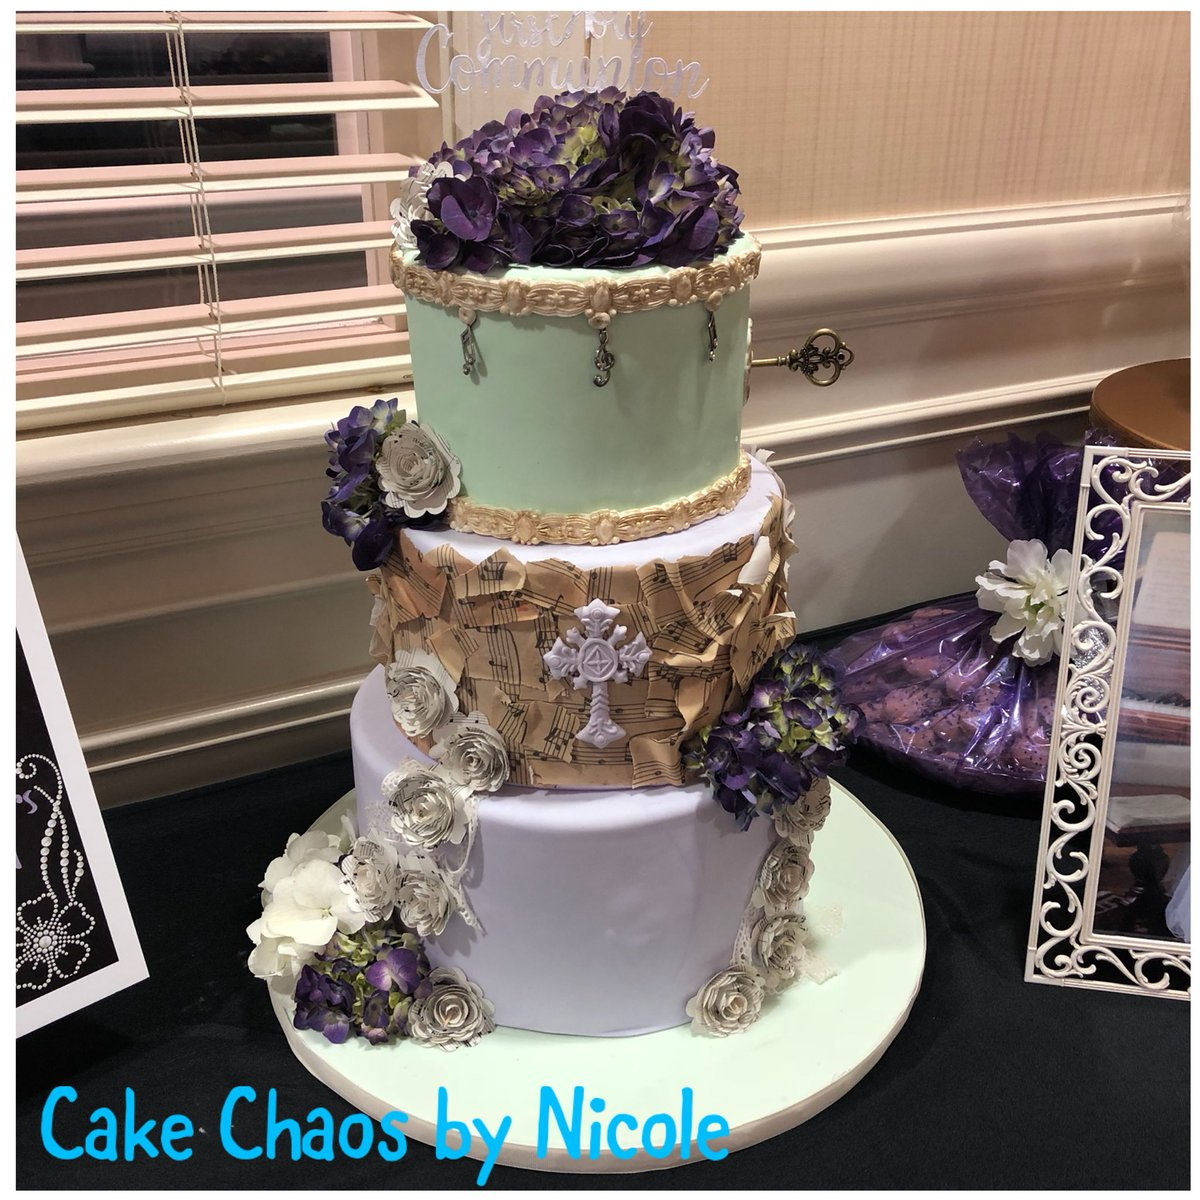 Cake Chaos By Nicole On Twitter To Say I Love This Cake Is An